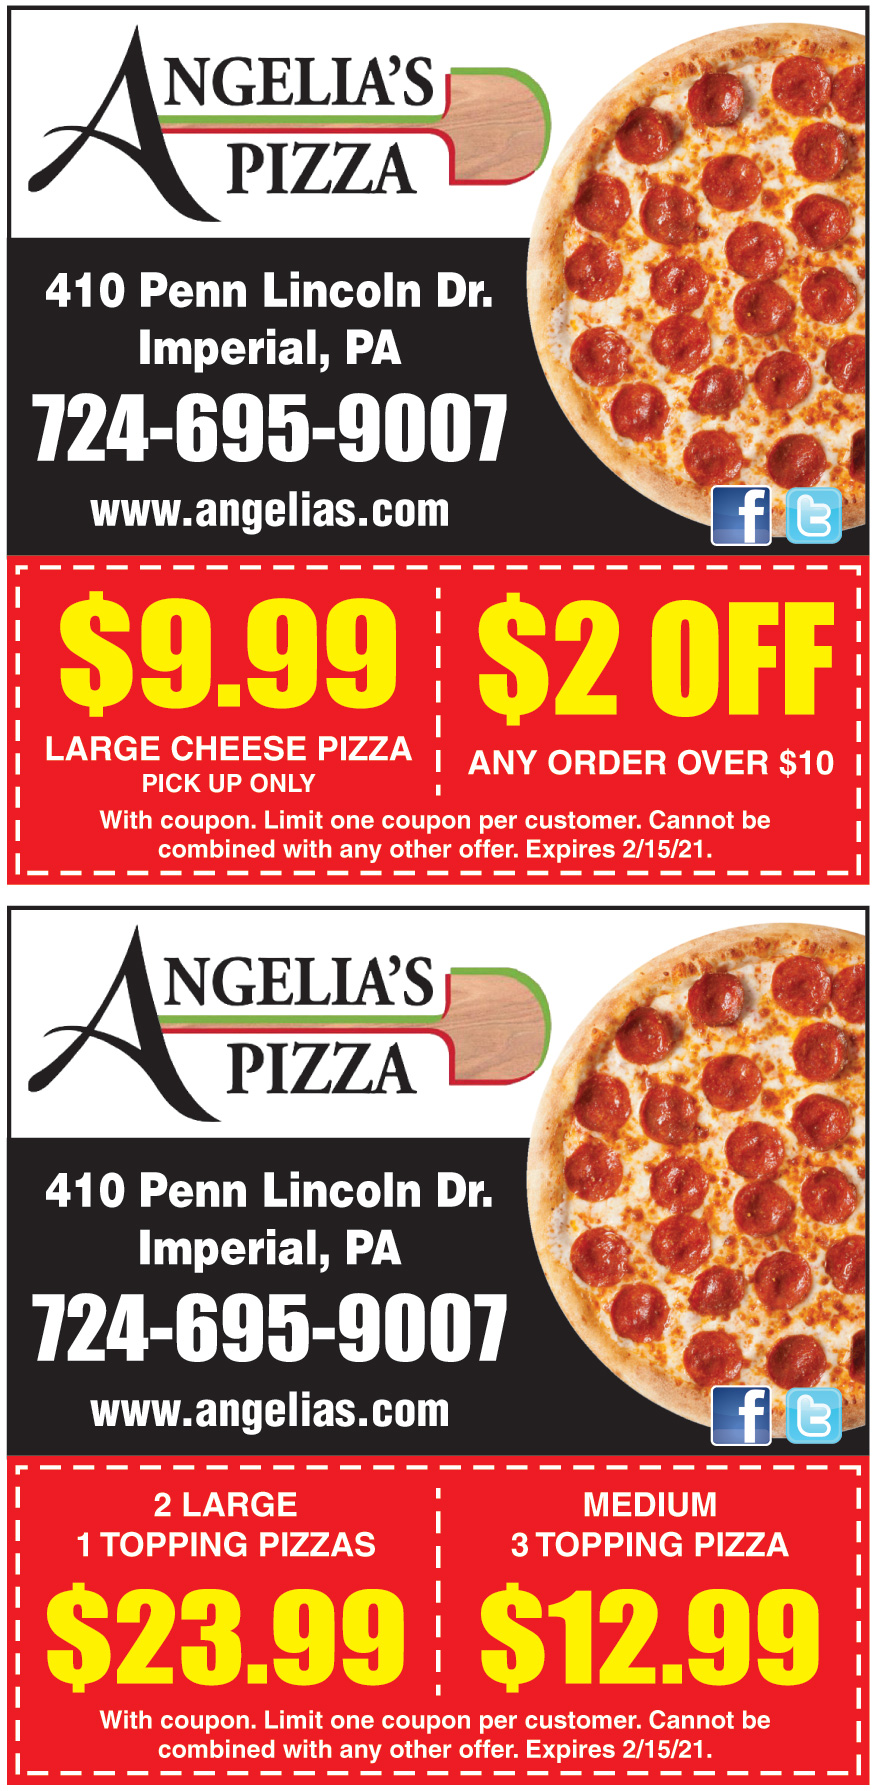 ANGELIAS PIZZA